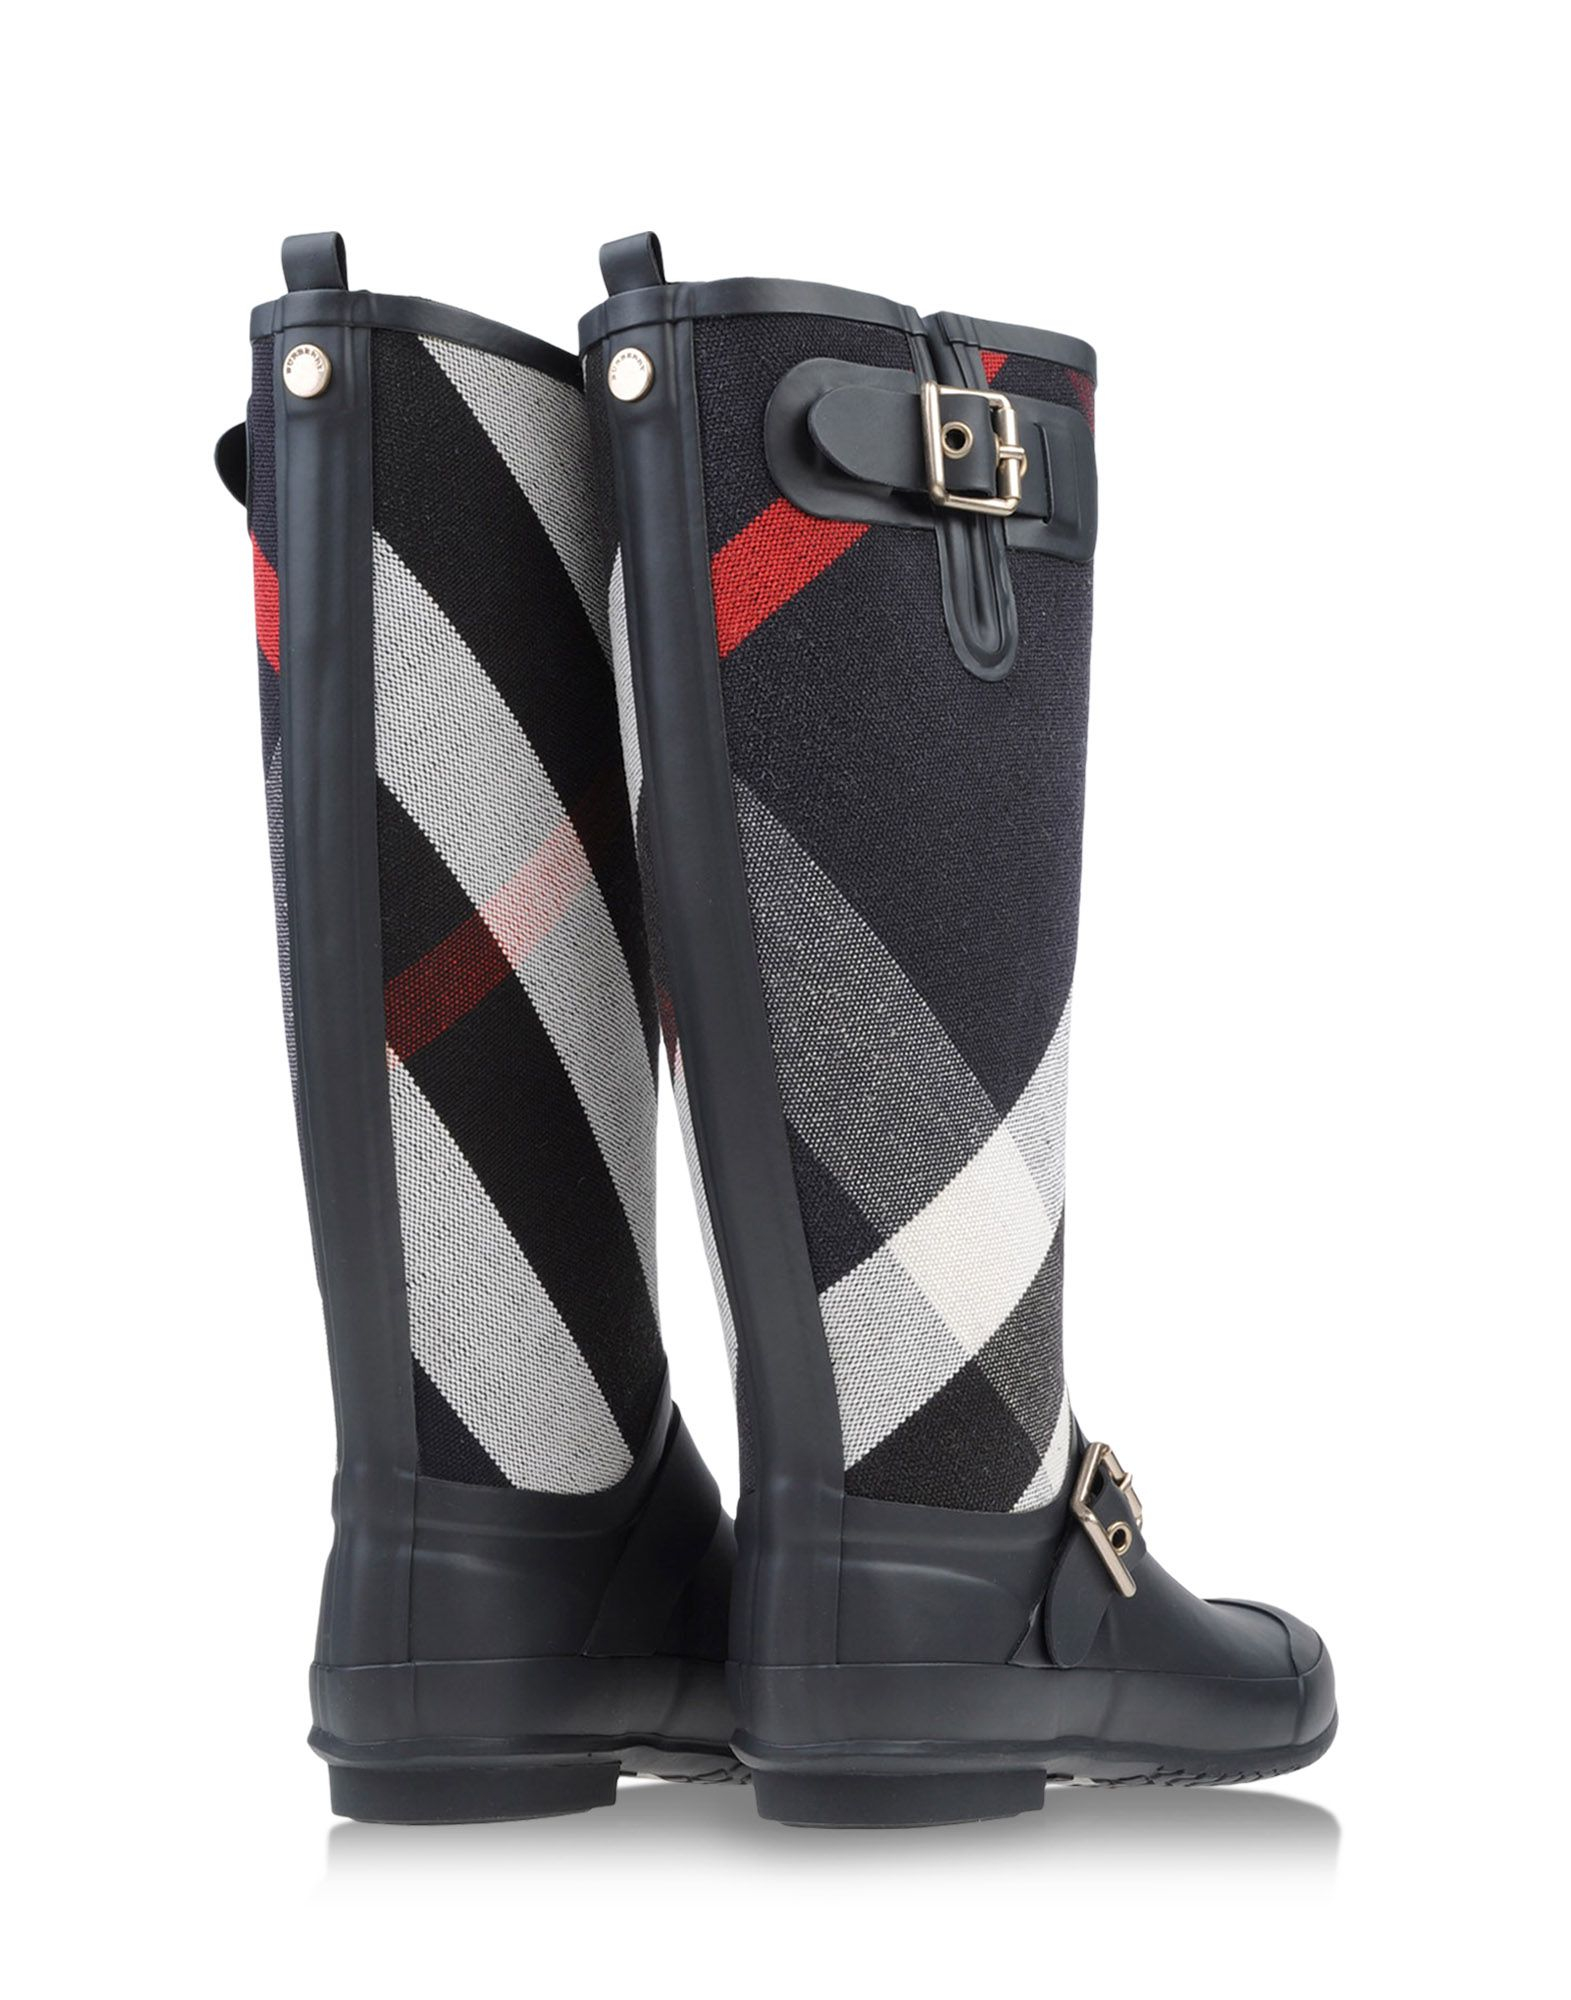 I truly love this cute boots. It goes well with any kind of style! True to size. I ordered my usual size 7, it perfectly fits and it has no problem about rubbing my back ankle and toe box perfectly fit my size too.